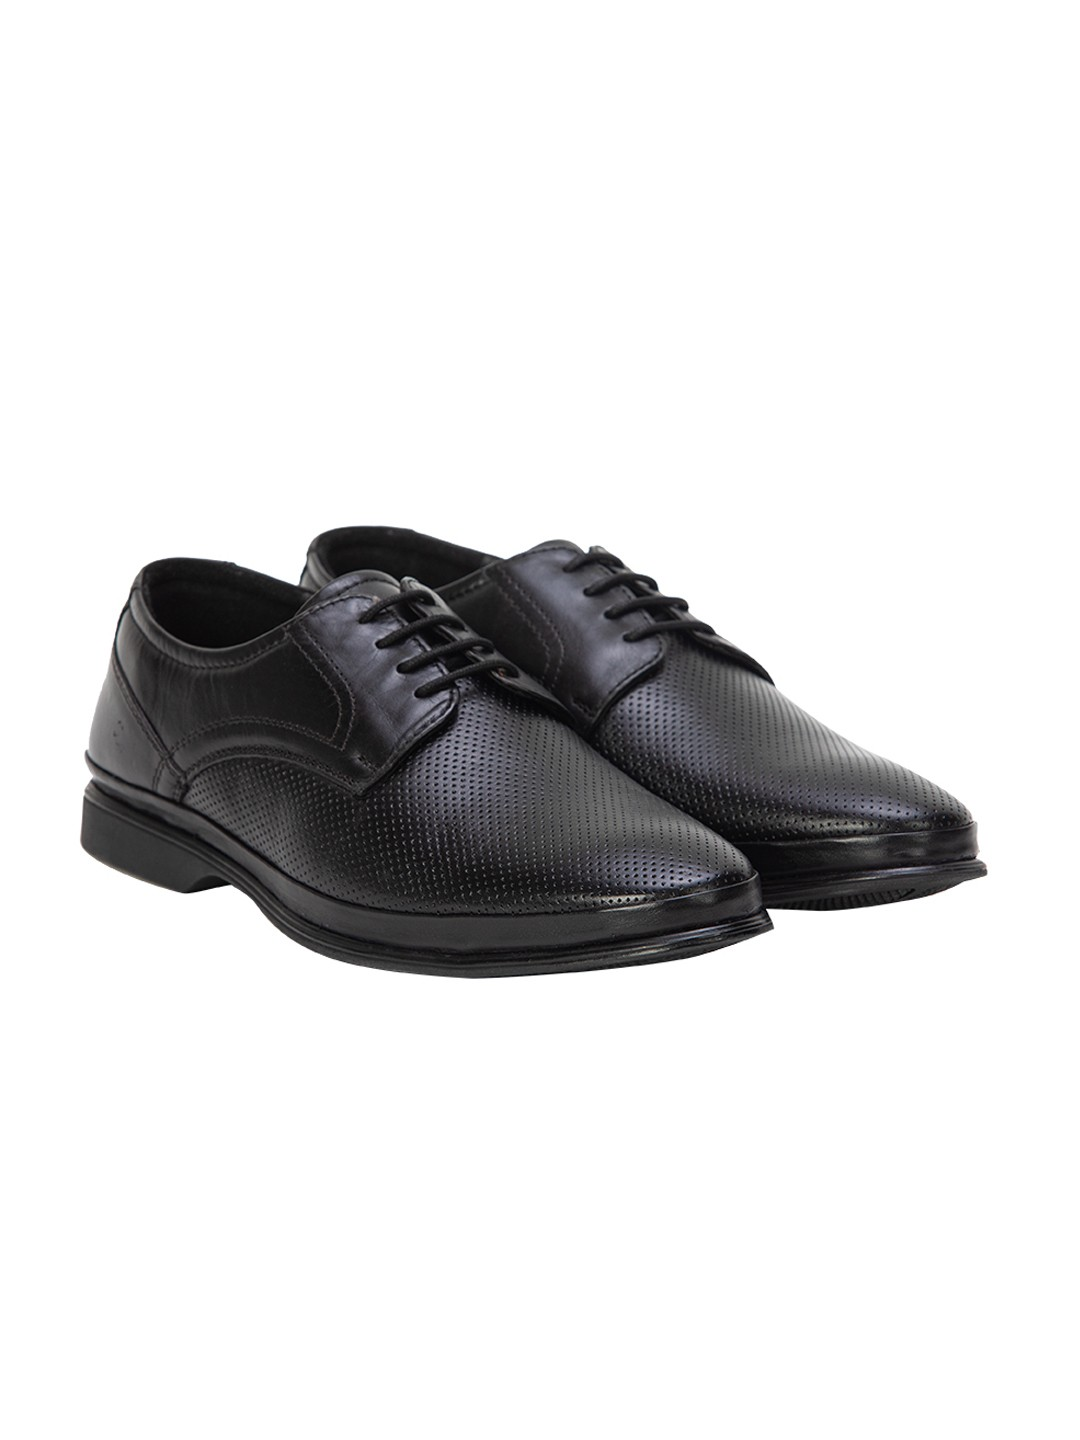 Buy Von Wellx Germany Comfort Coen Black Shoes Online in Pune